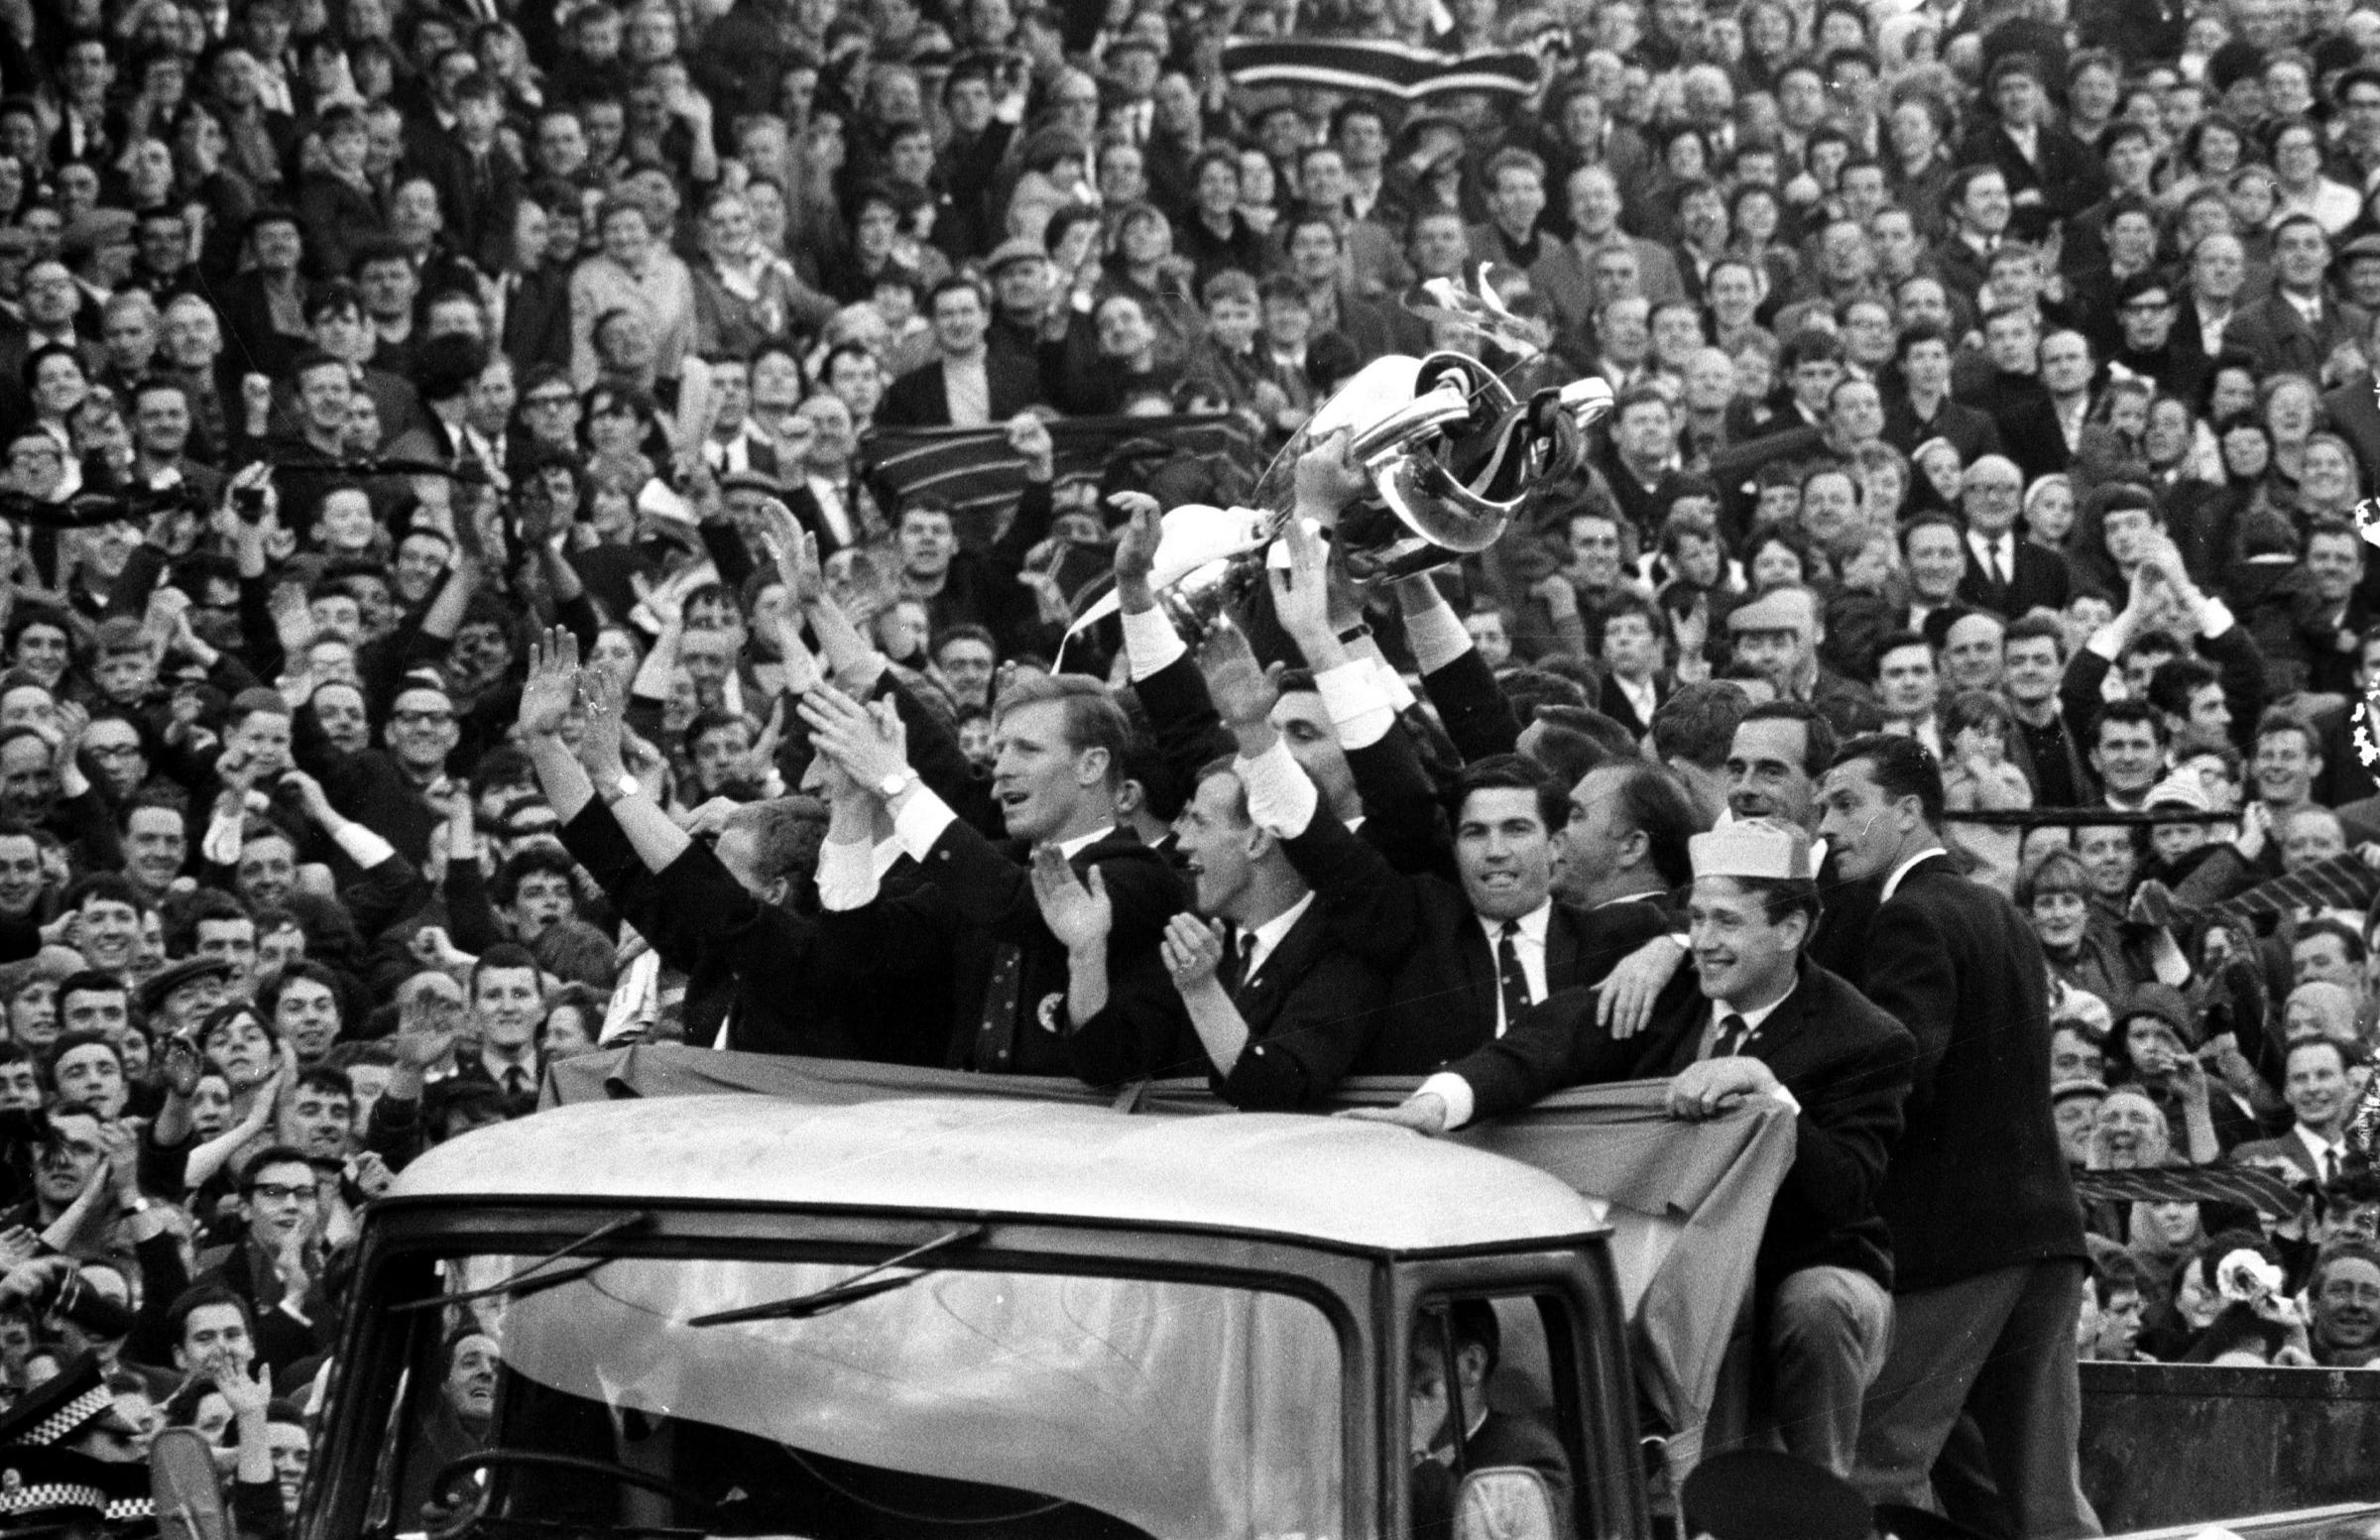 Celtic's Lisbon Lions: Humble heroes who became a band of brothers after winning the 1967 European Cup